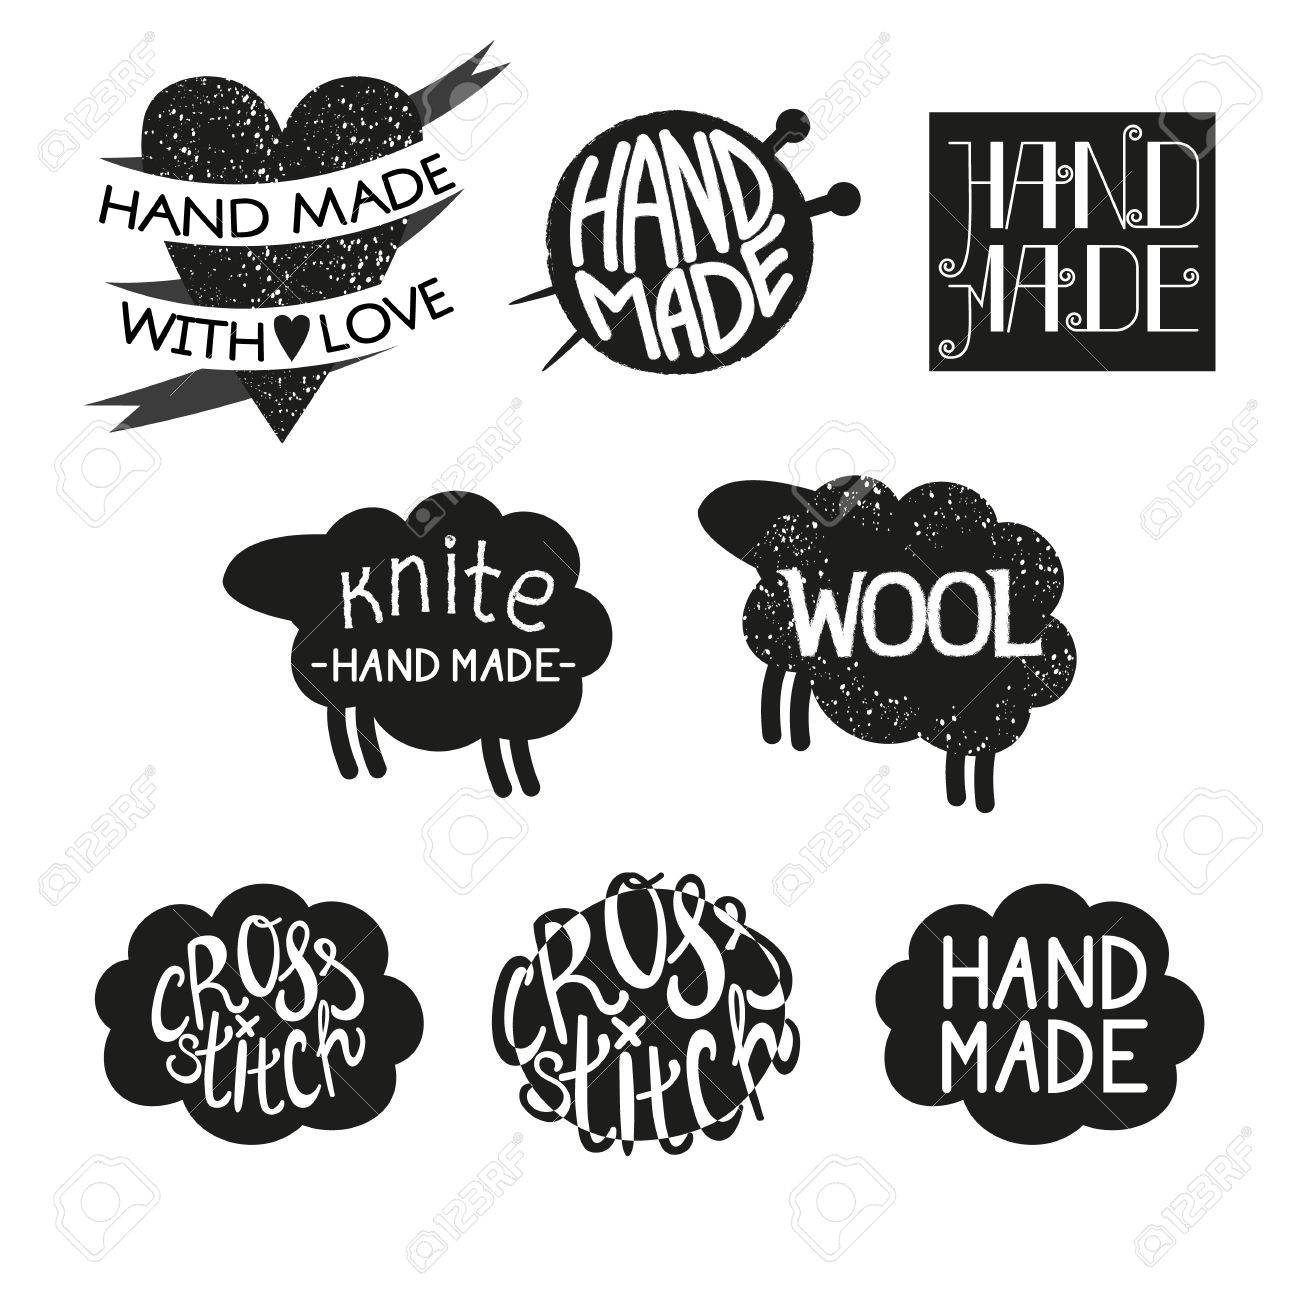 Set Of Different Styles Hand Made Logotypes Design Elements And Labels.  Hand Made, Made